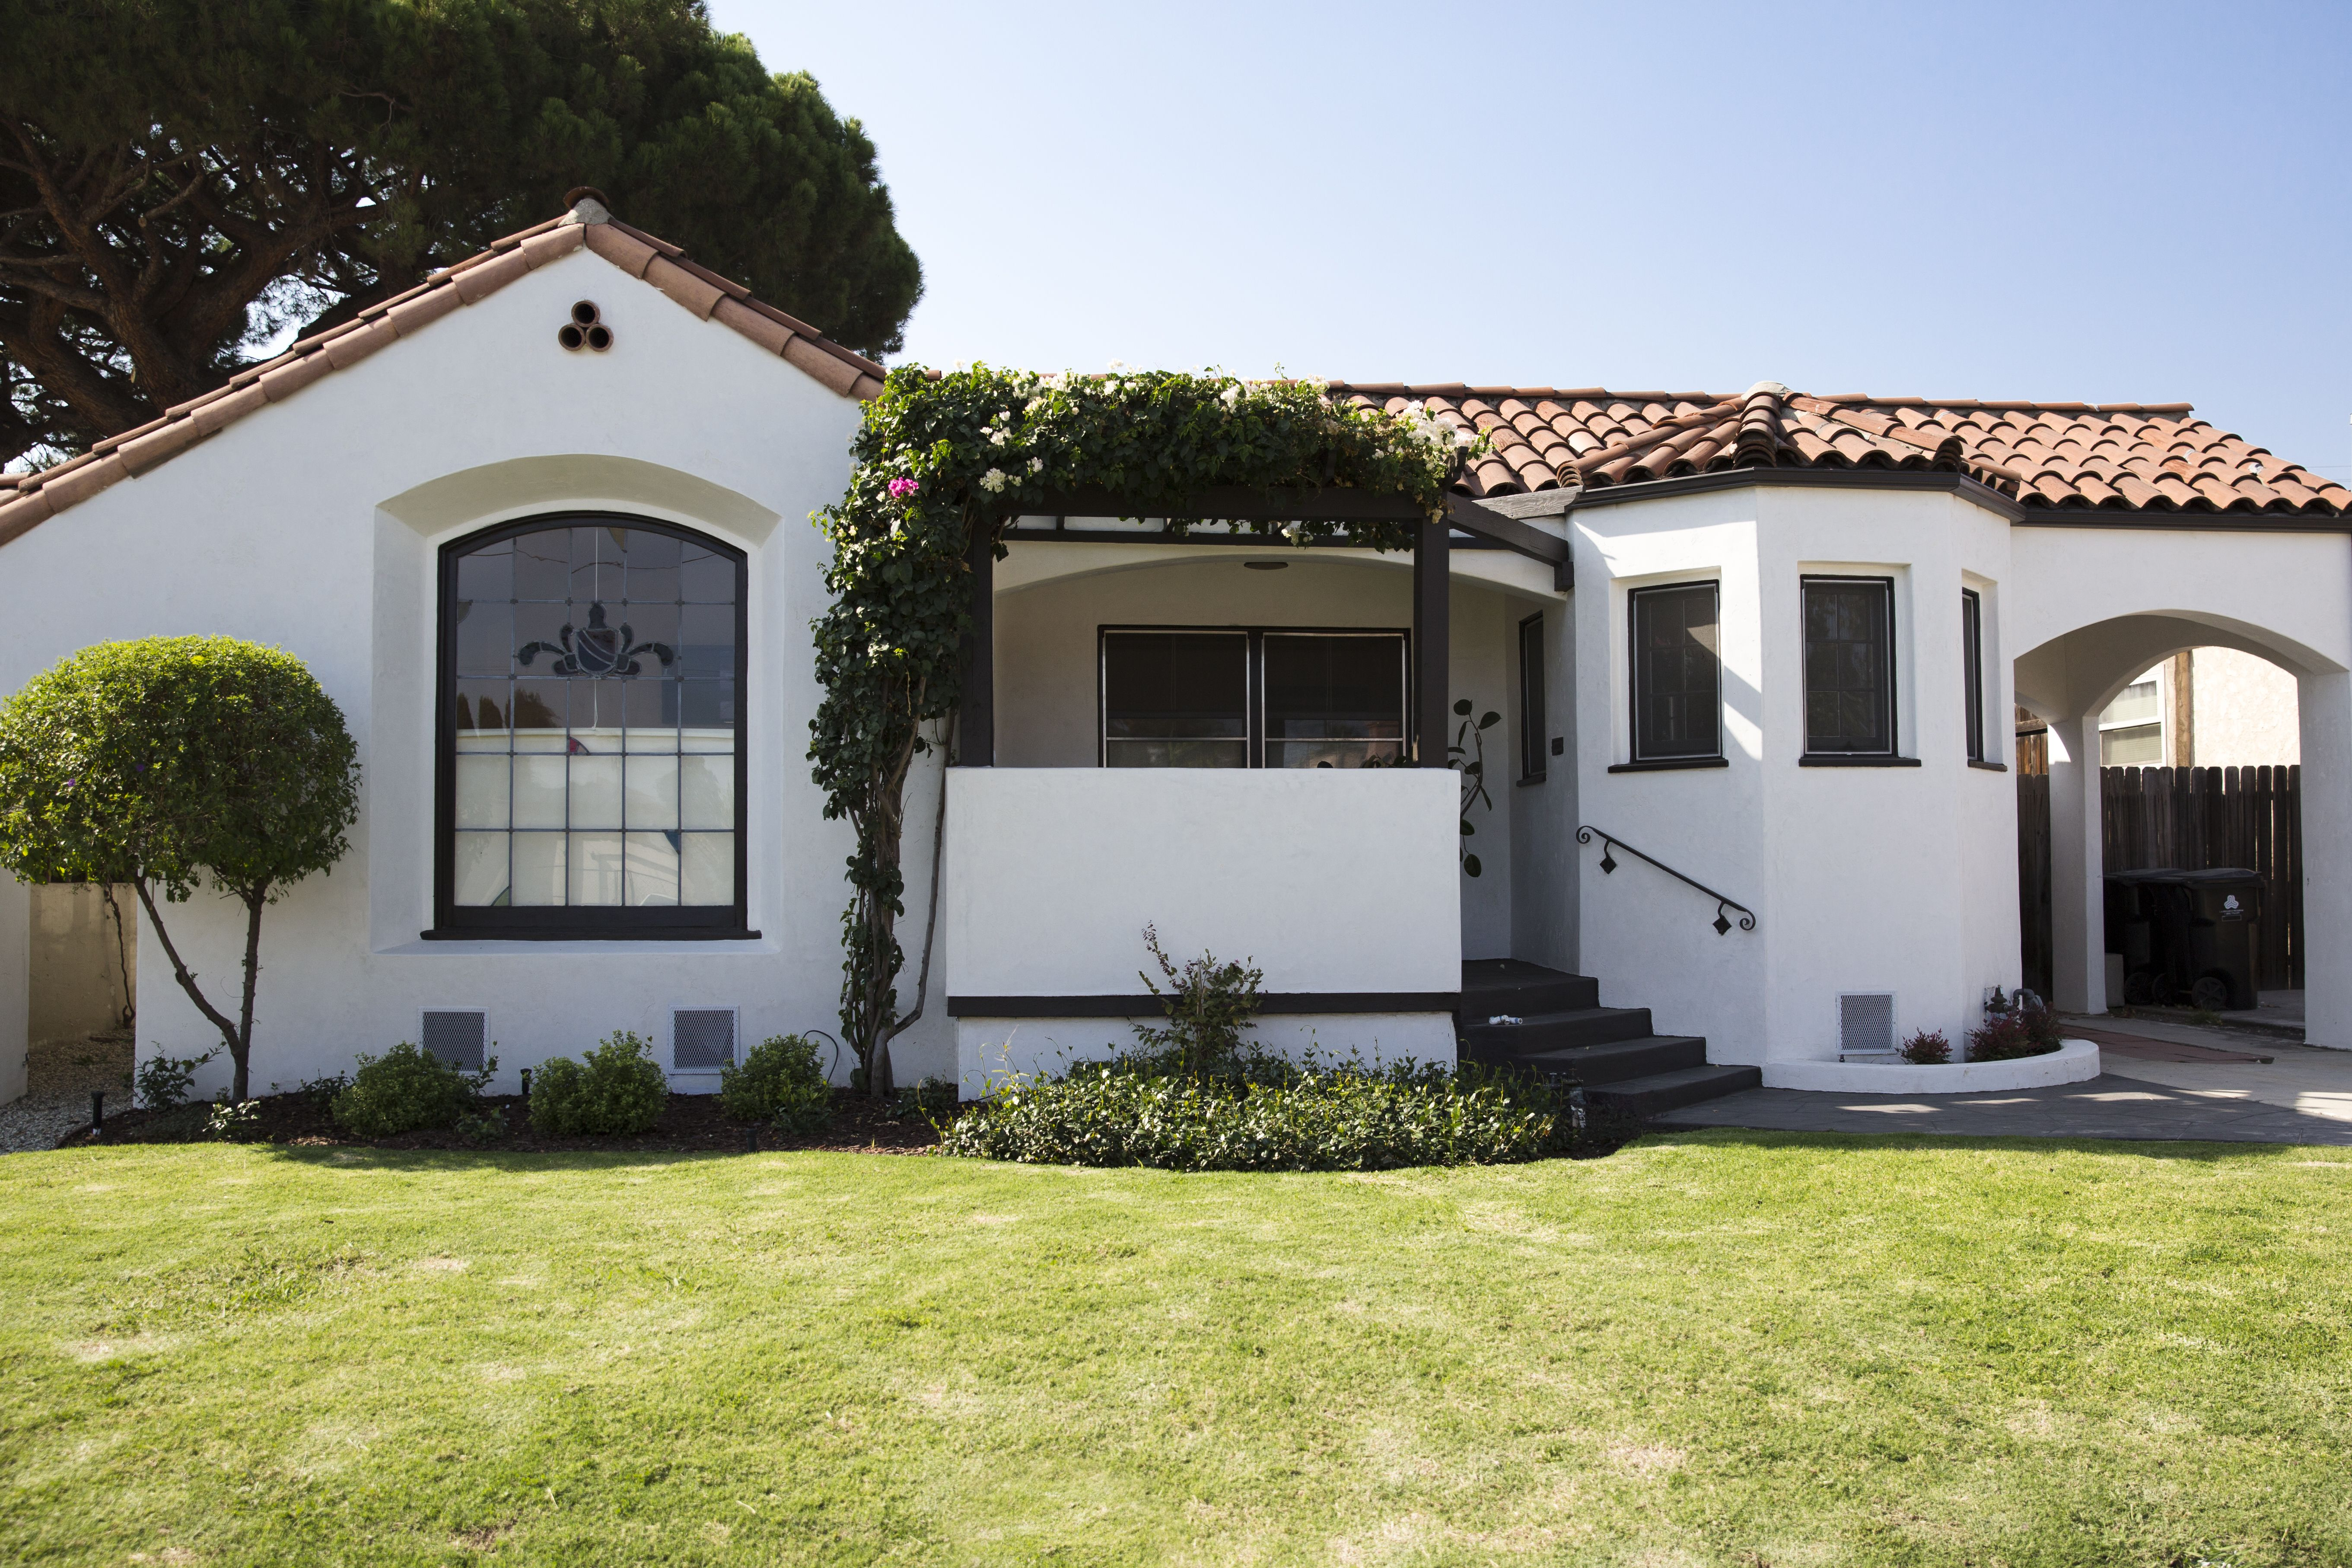 Midcity spanishstyle packed with original details asks m